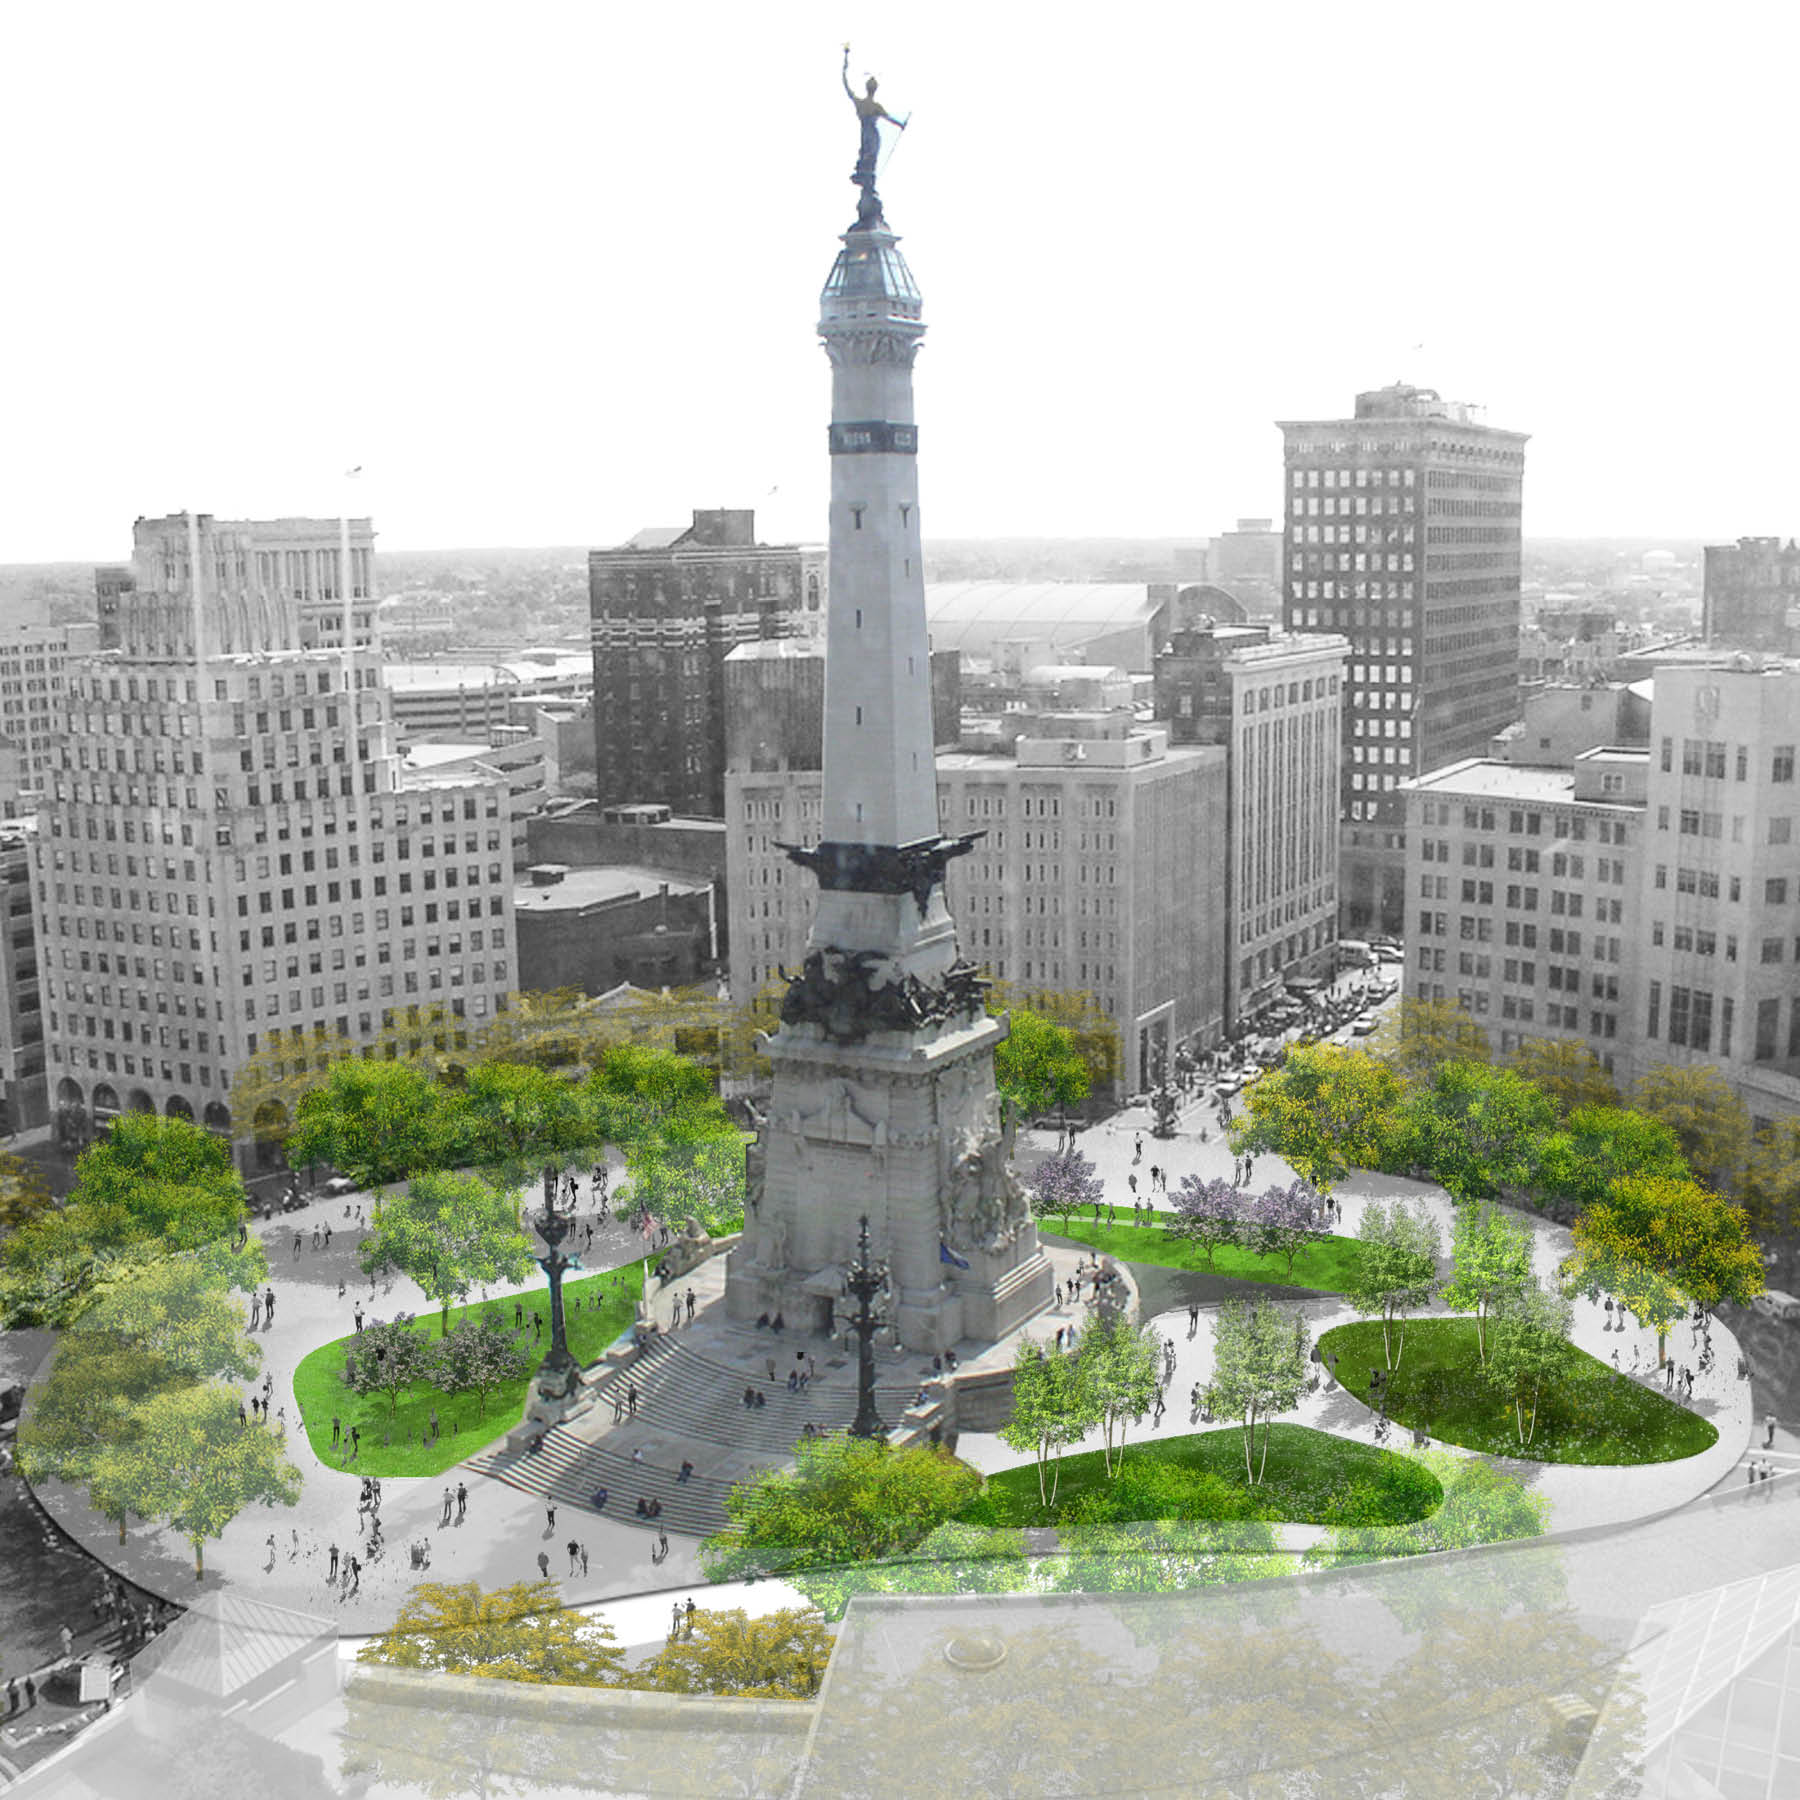 hinterlands_indianapolis-monument-nexus_02.jpg